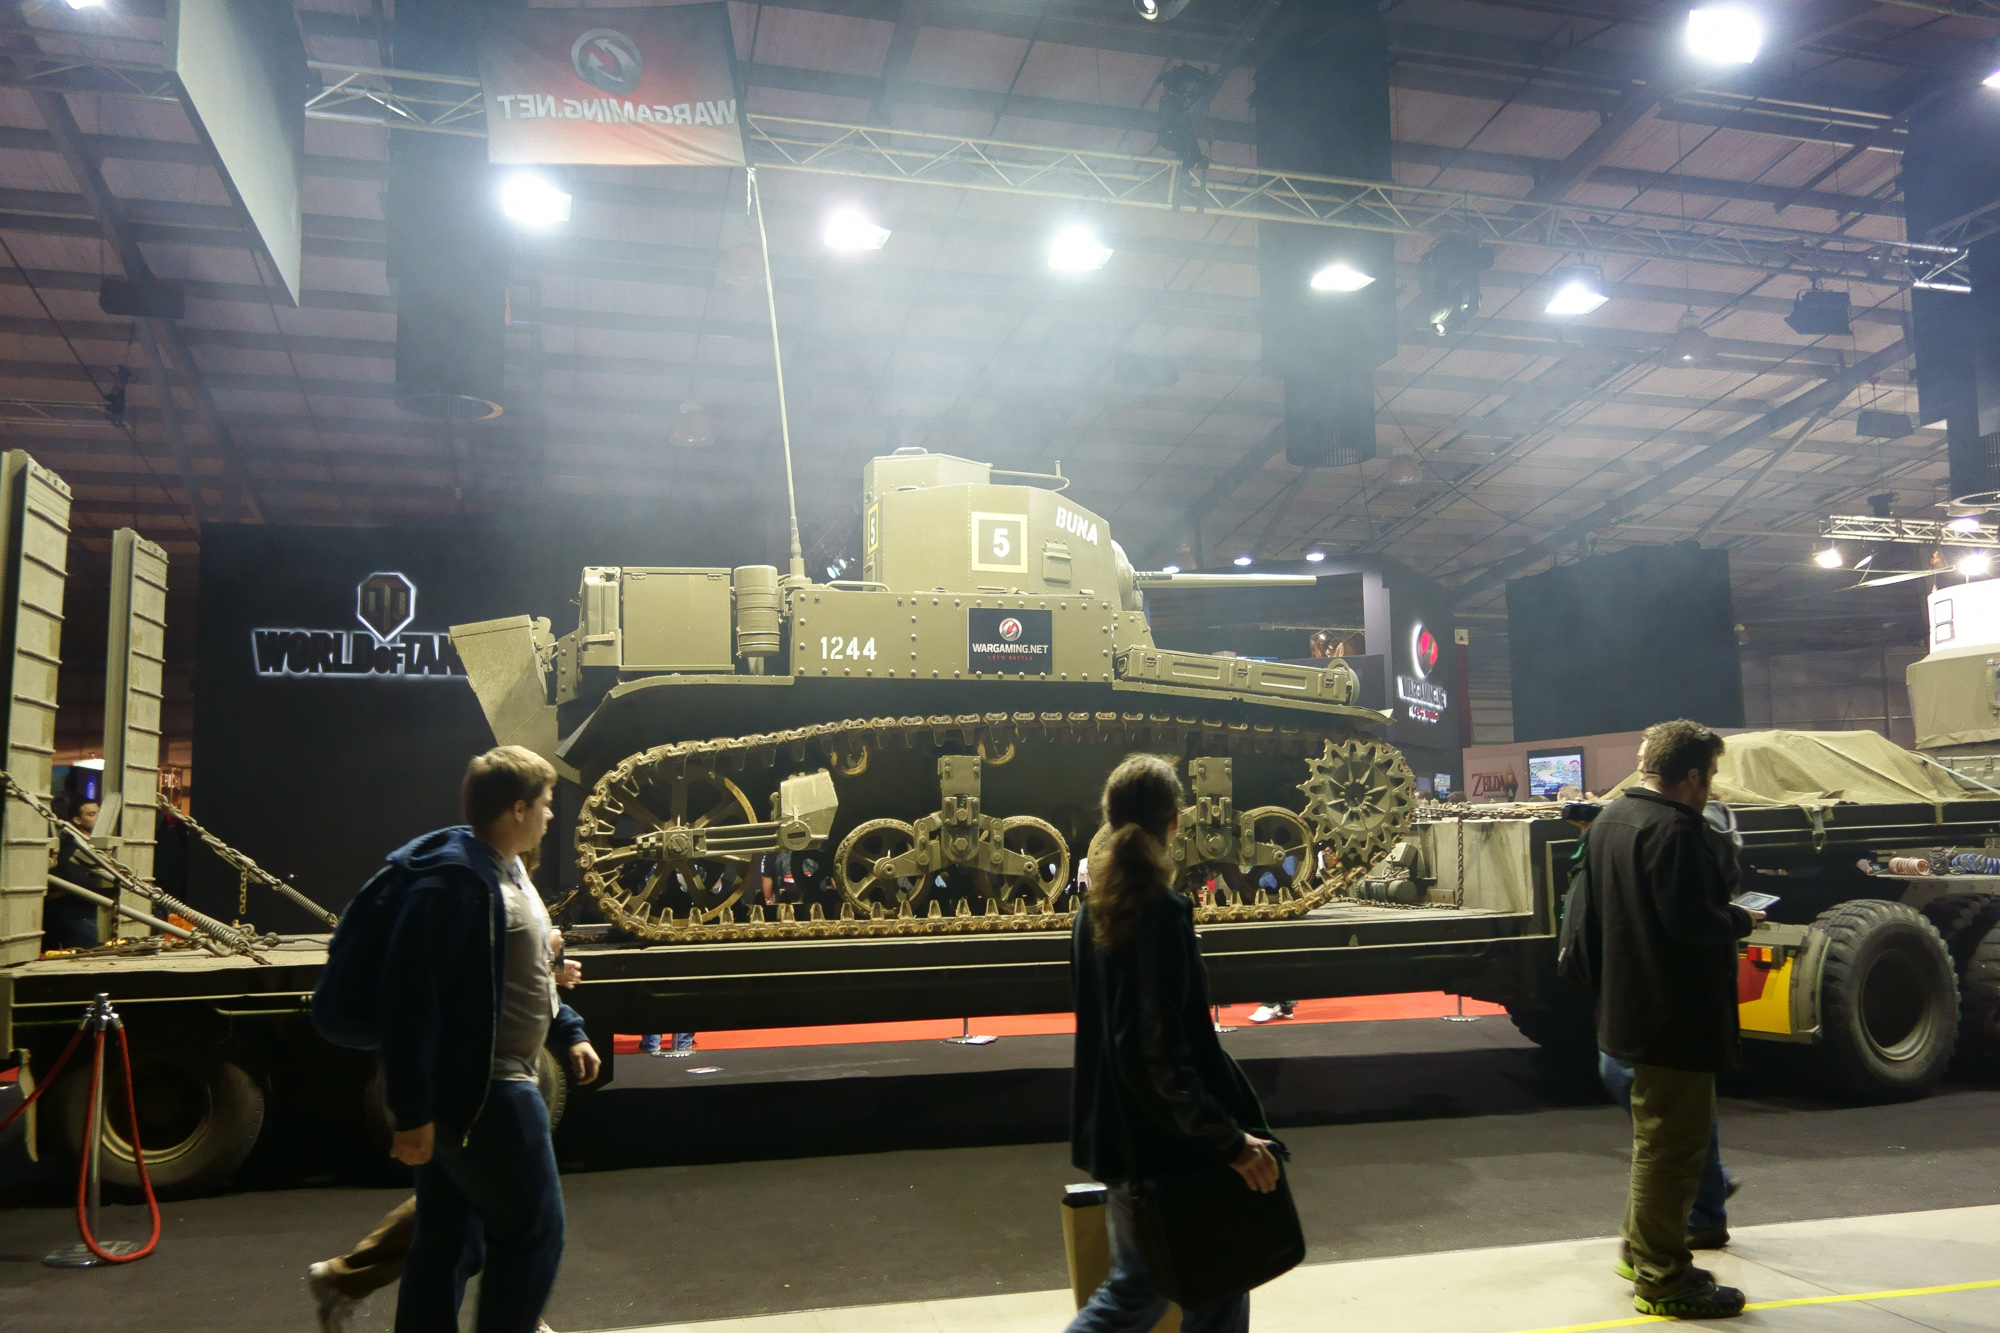 The World of Tanks guys had an actual tank. The fog is from Gigabyte, who were doing overclocking with liquid nitrogen or similar